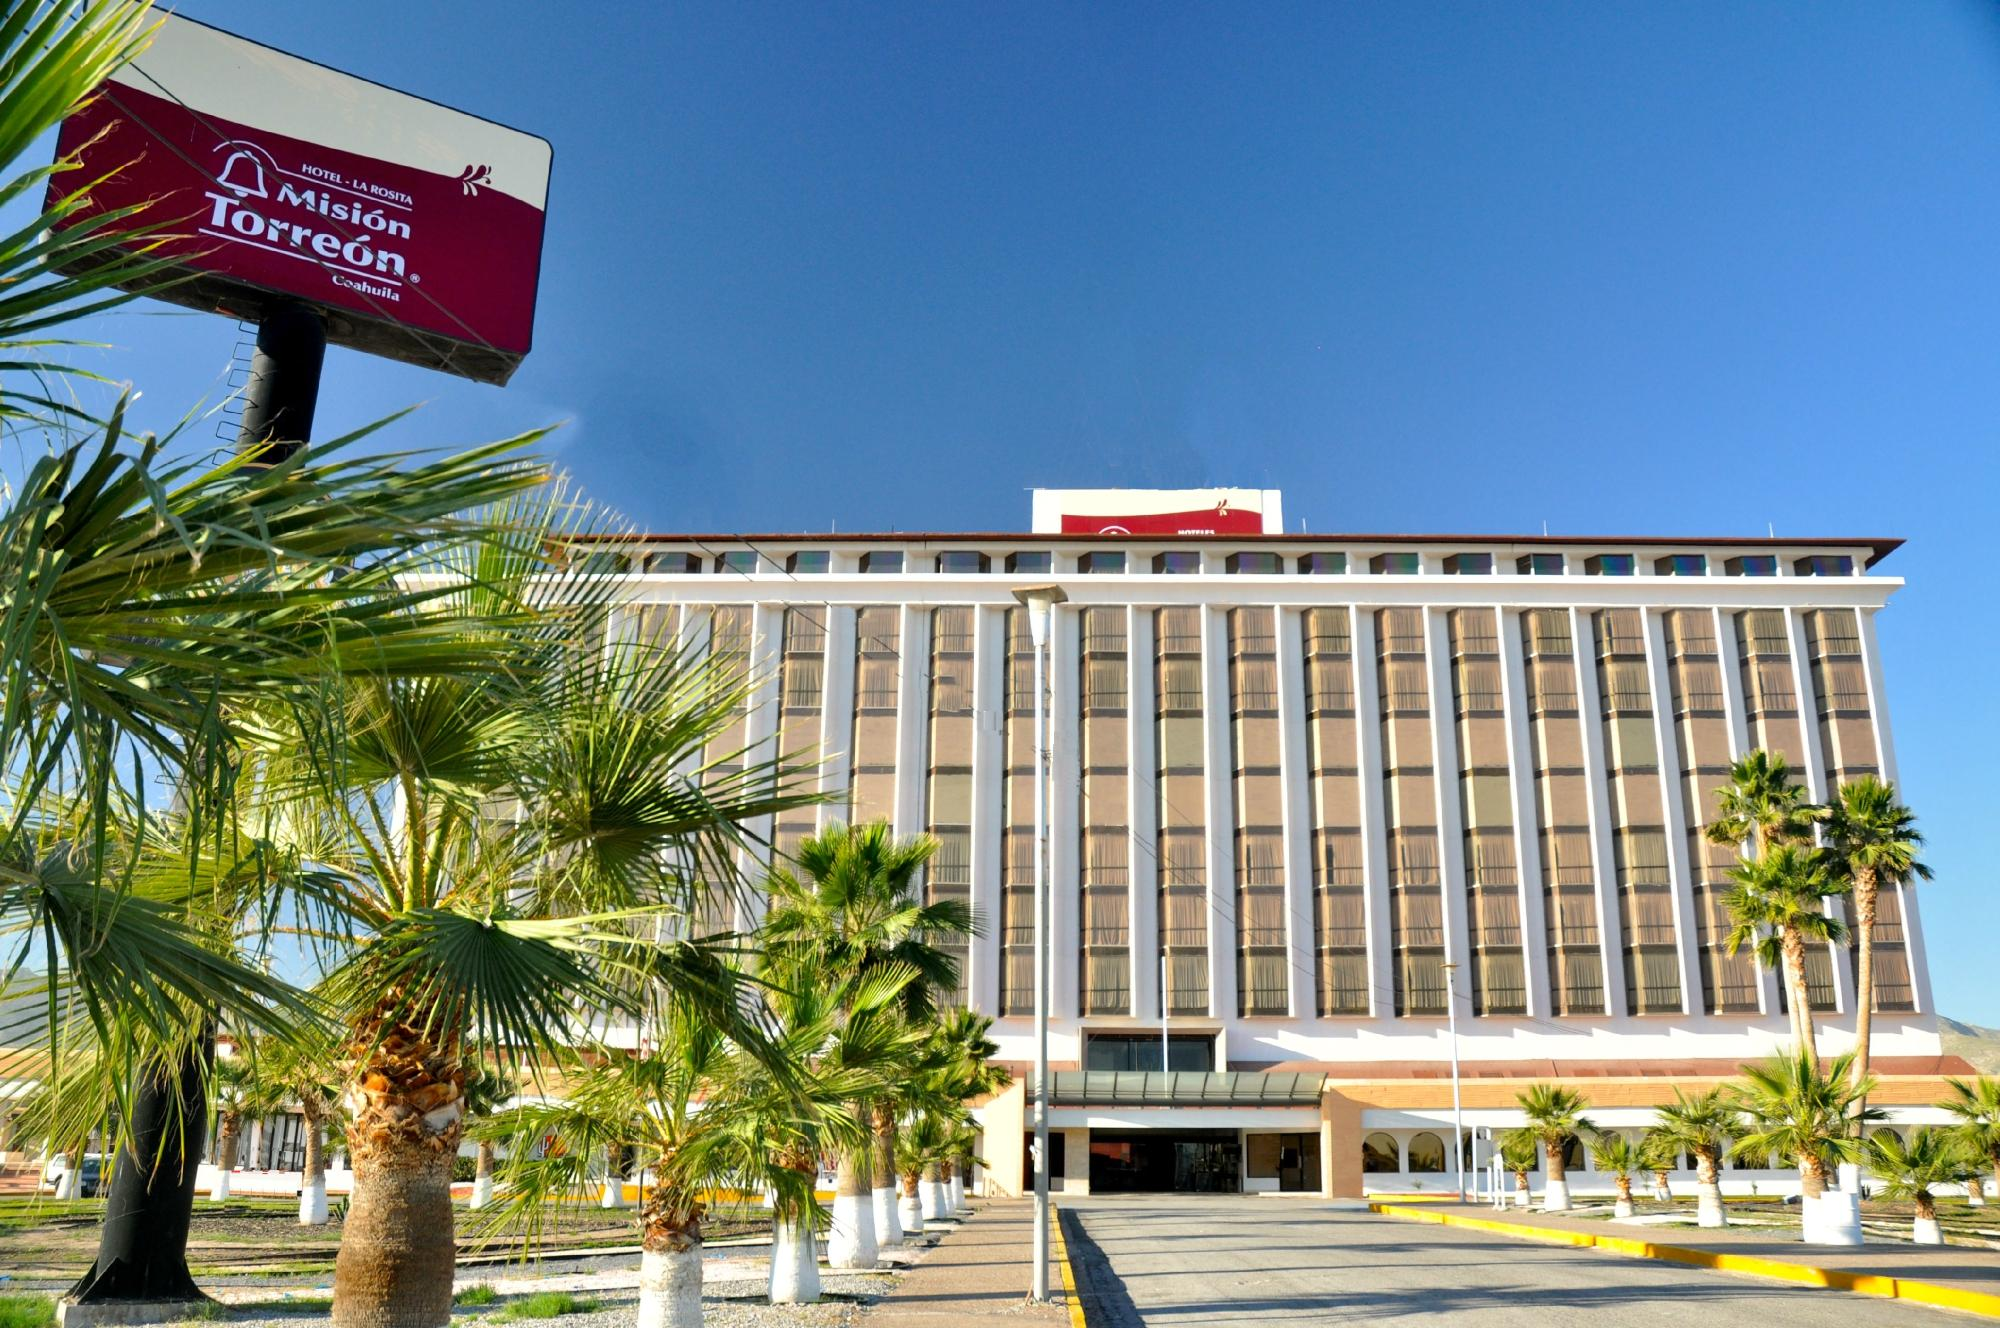 Hotel Mision Torreon